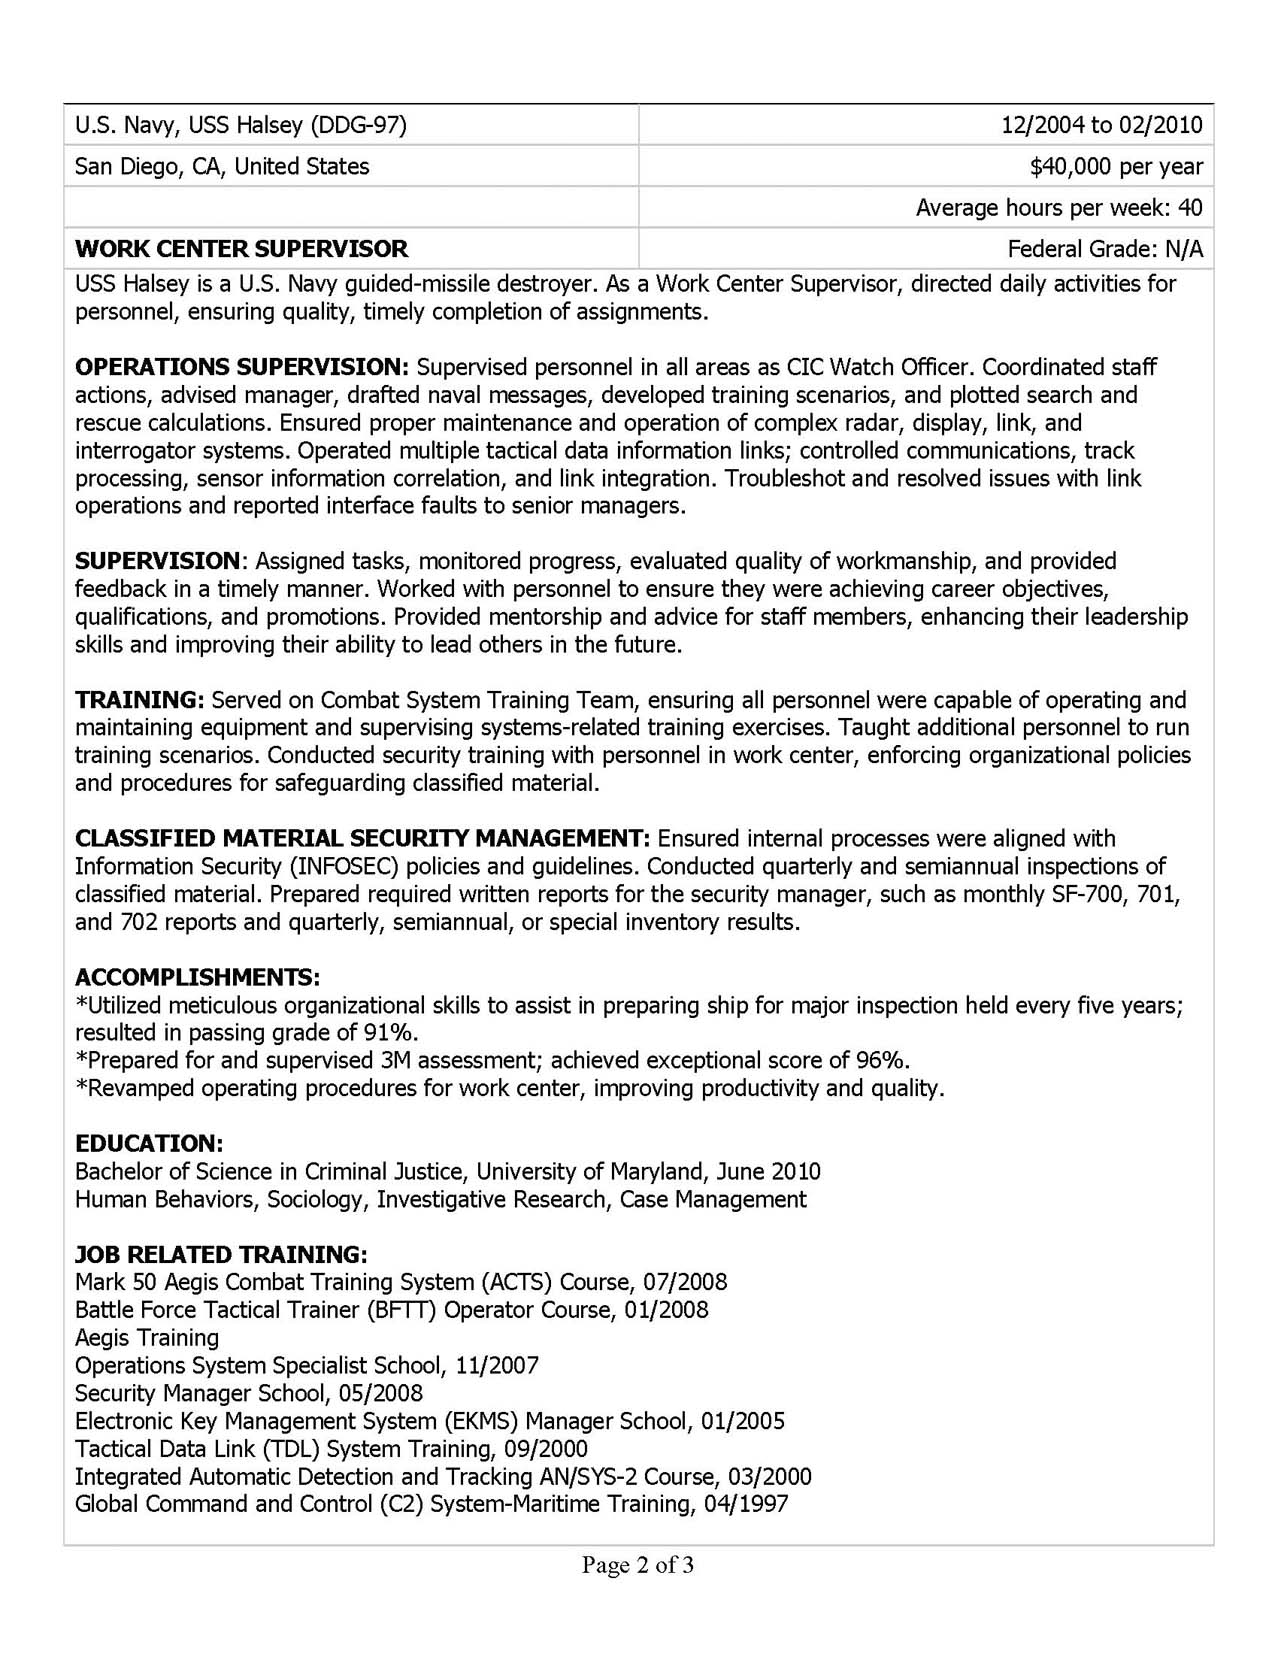 veteran resume writing services best military to civilian service usajobs sample for Resume Best Military To Civilian Resume Writing Service